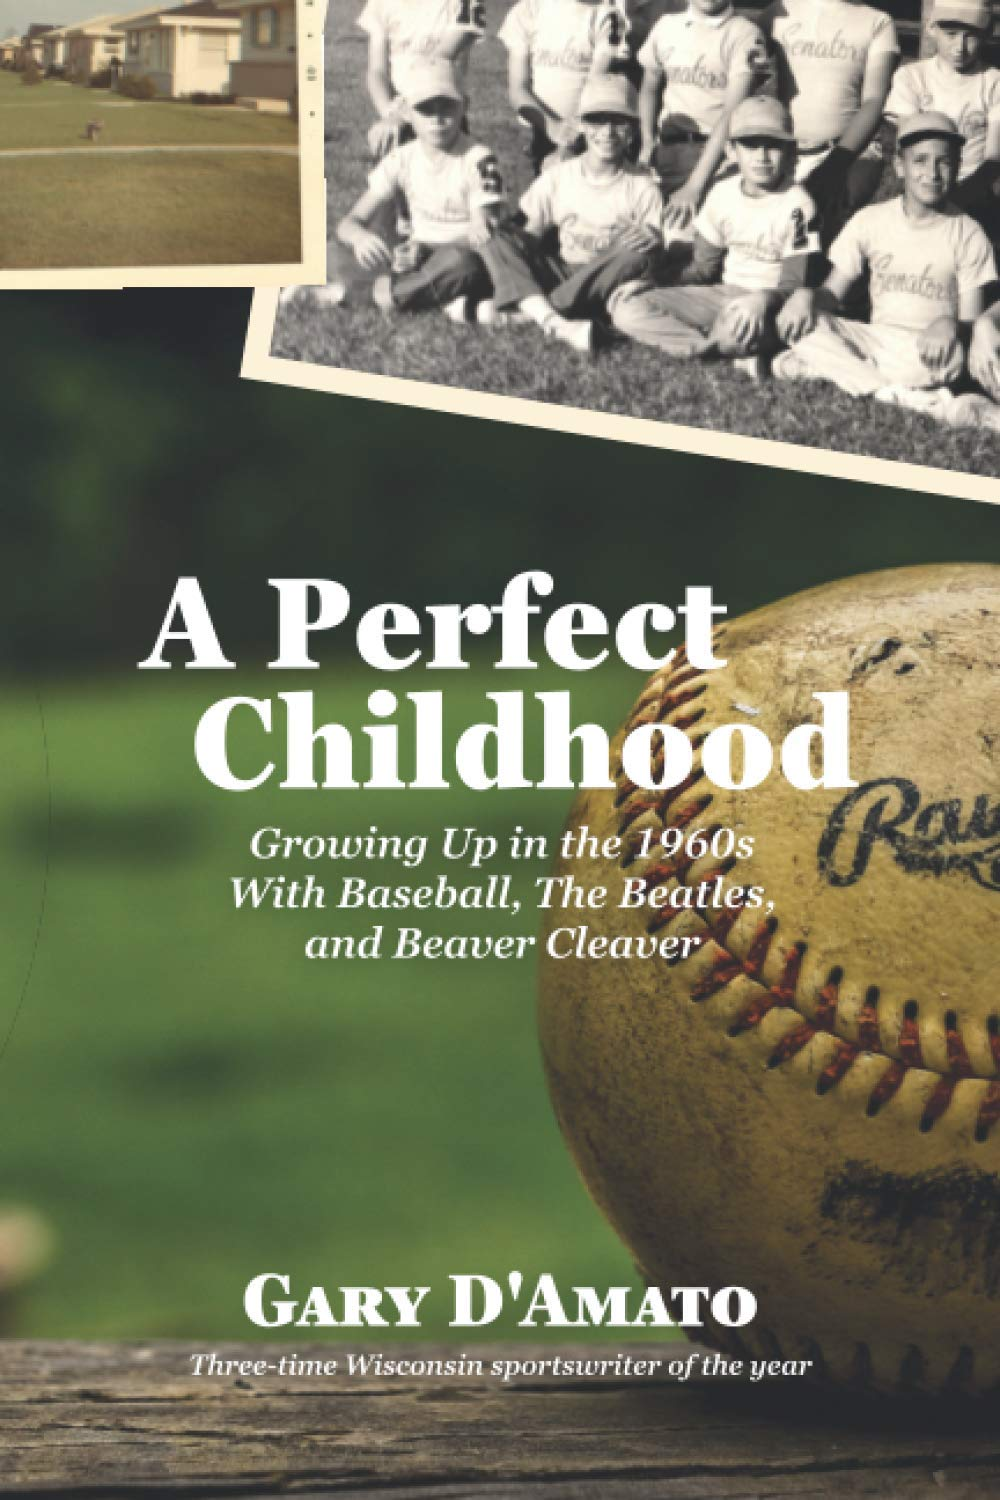 Amazon.com: A Perfect Childhood: Growing Up in the 1960s with Baseball, The  Beatles, and Beaver Cleaver (9798688779608): D'Amato, Gary, Hoffman, Paul  J., Haines, John: Books